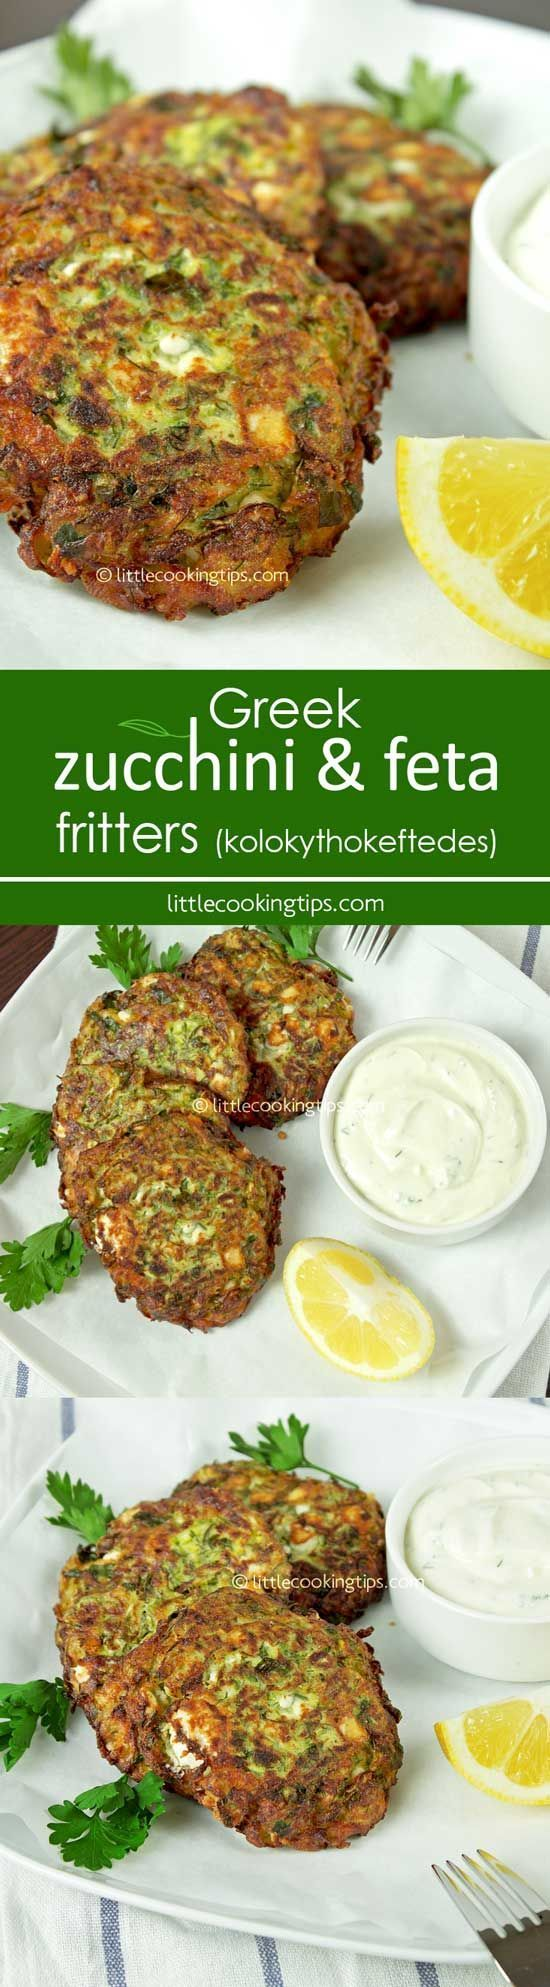 ... spinach and feta fritters feta casserole spinach and feta fritters